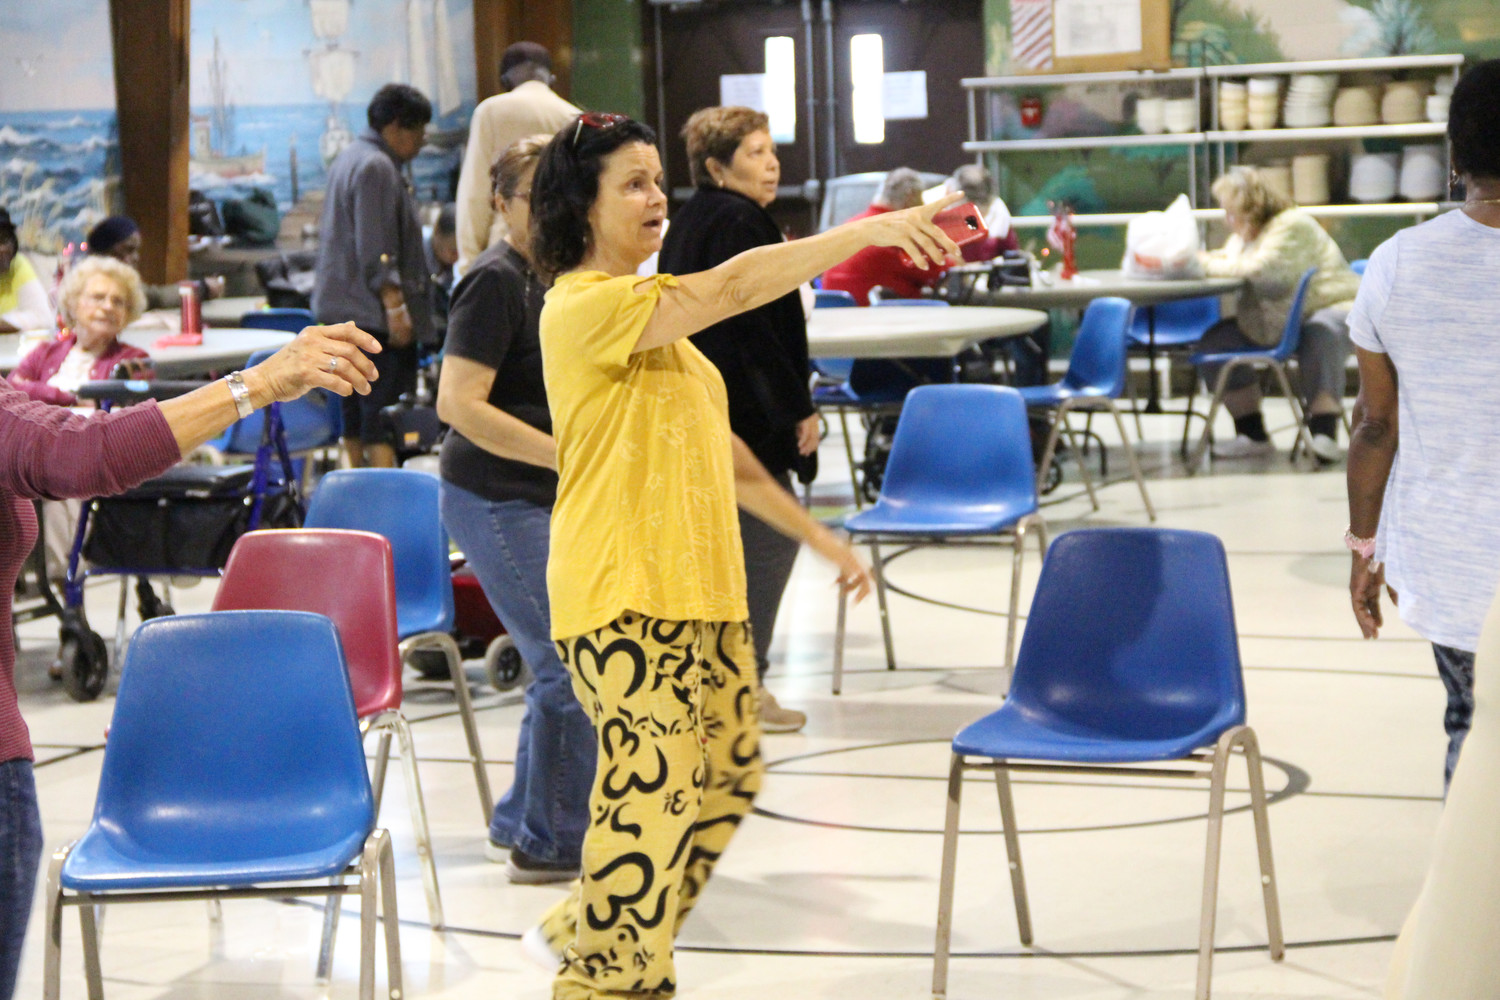 Certified Yoga Instructor Anne Moffatt, 56, showed the exercise class how to do the dance steps at the senior center off Church Street in Freeport.